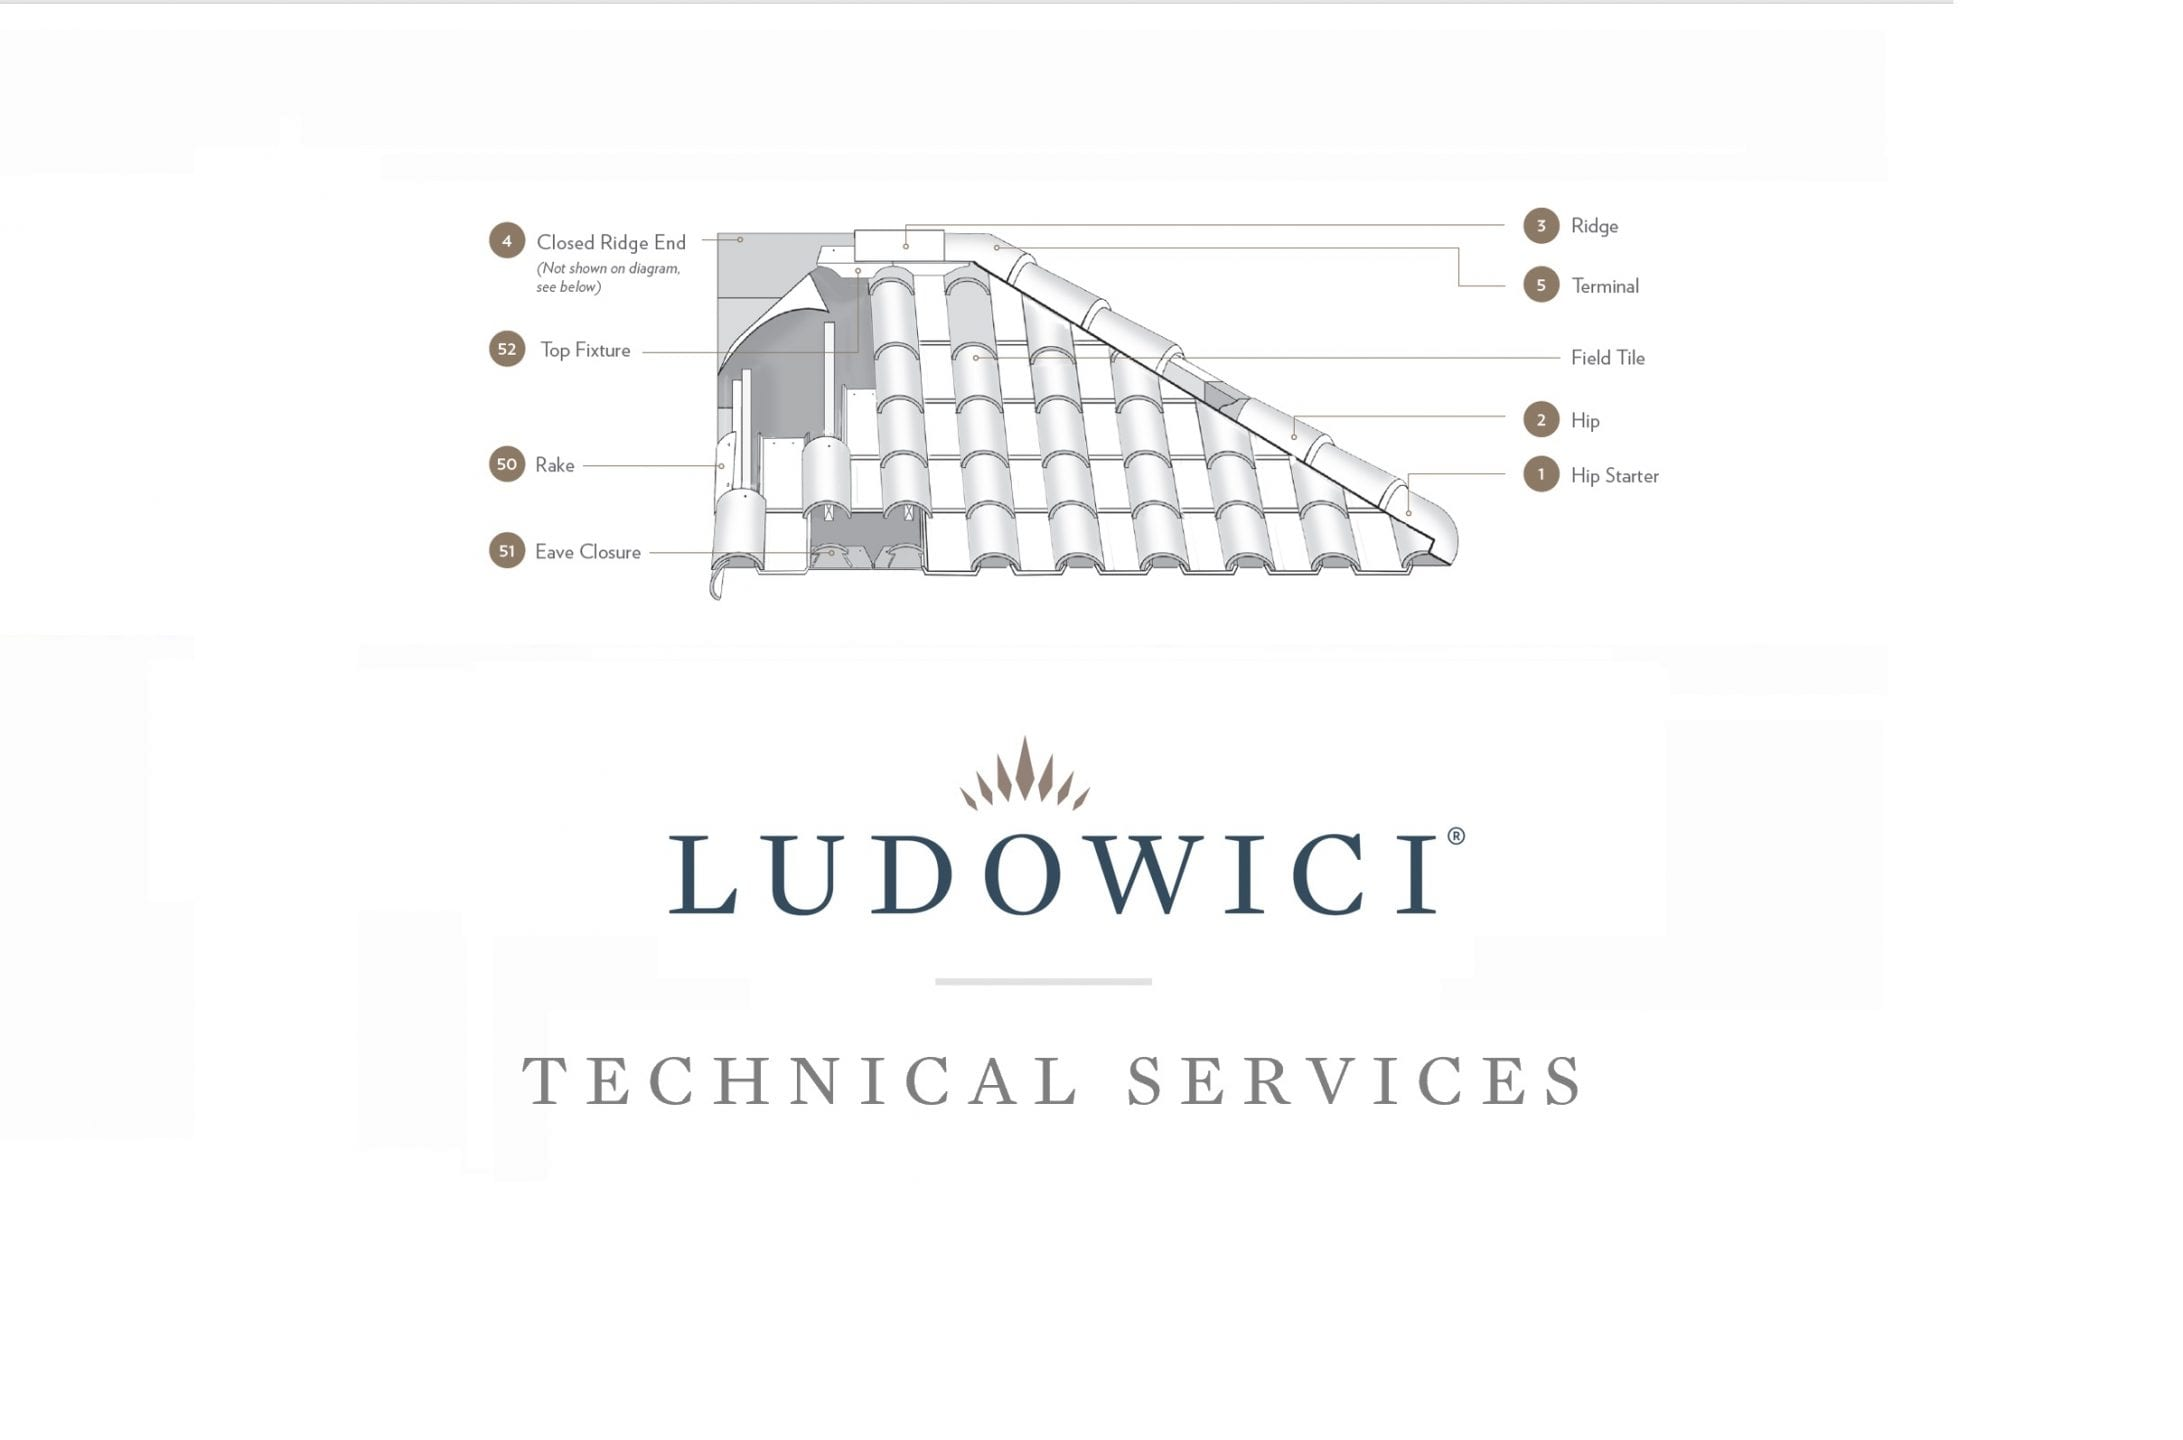 Ludowici Technical Services